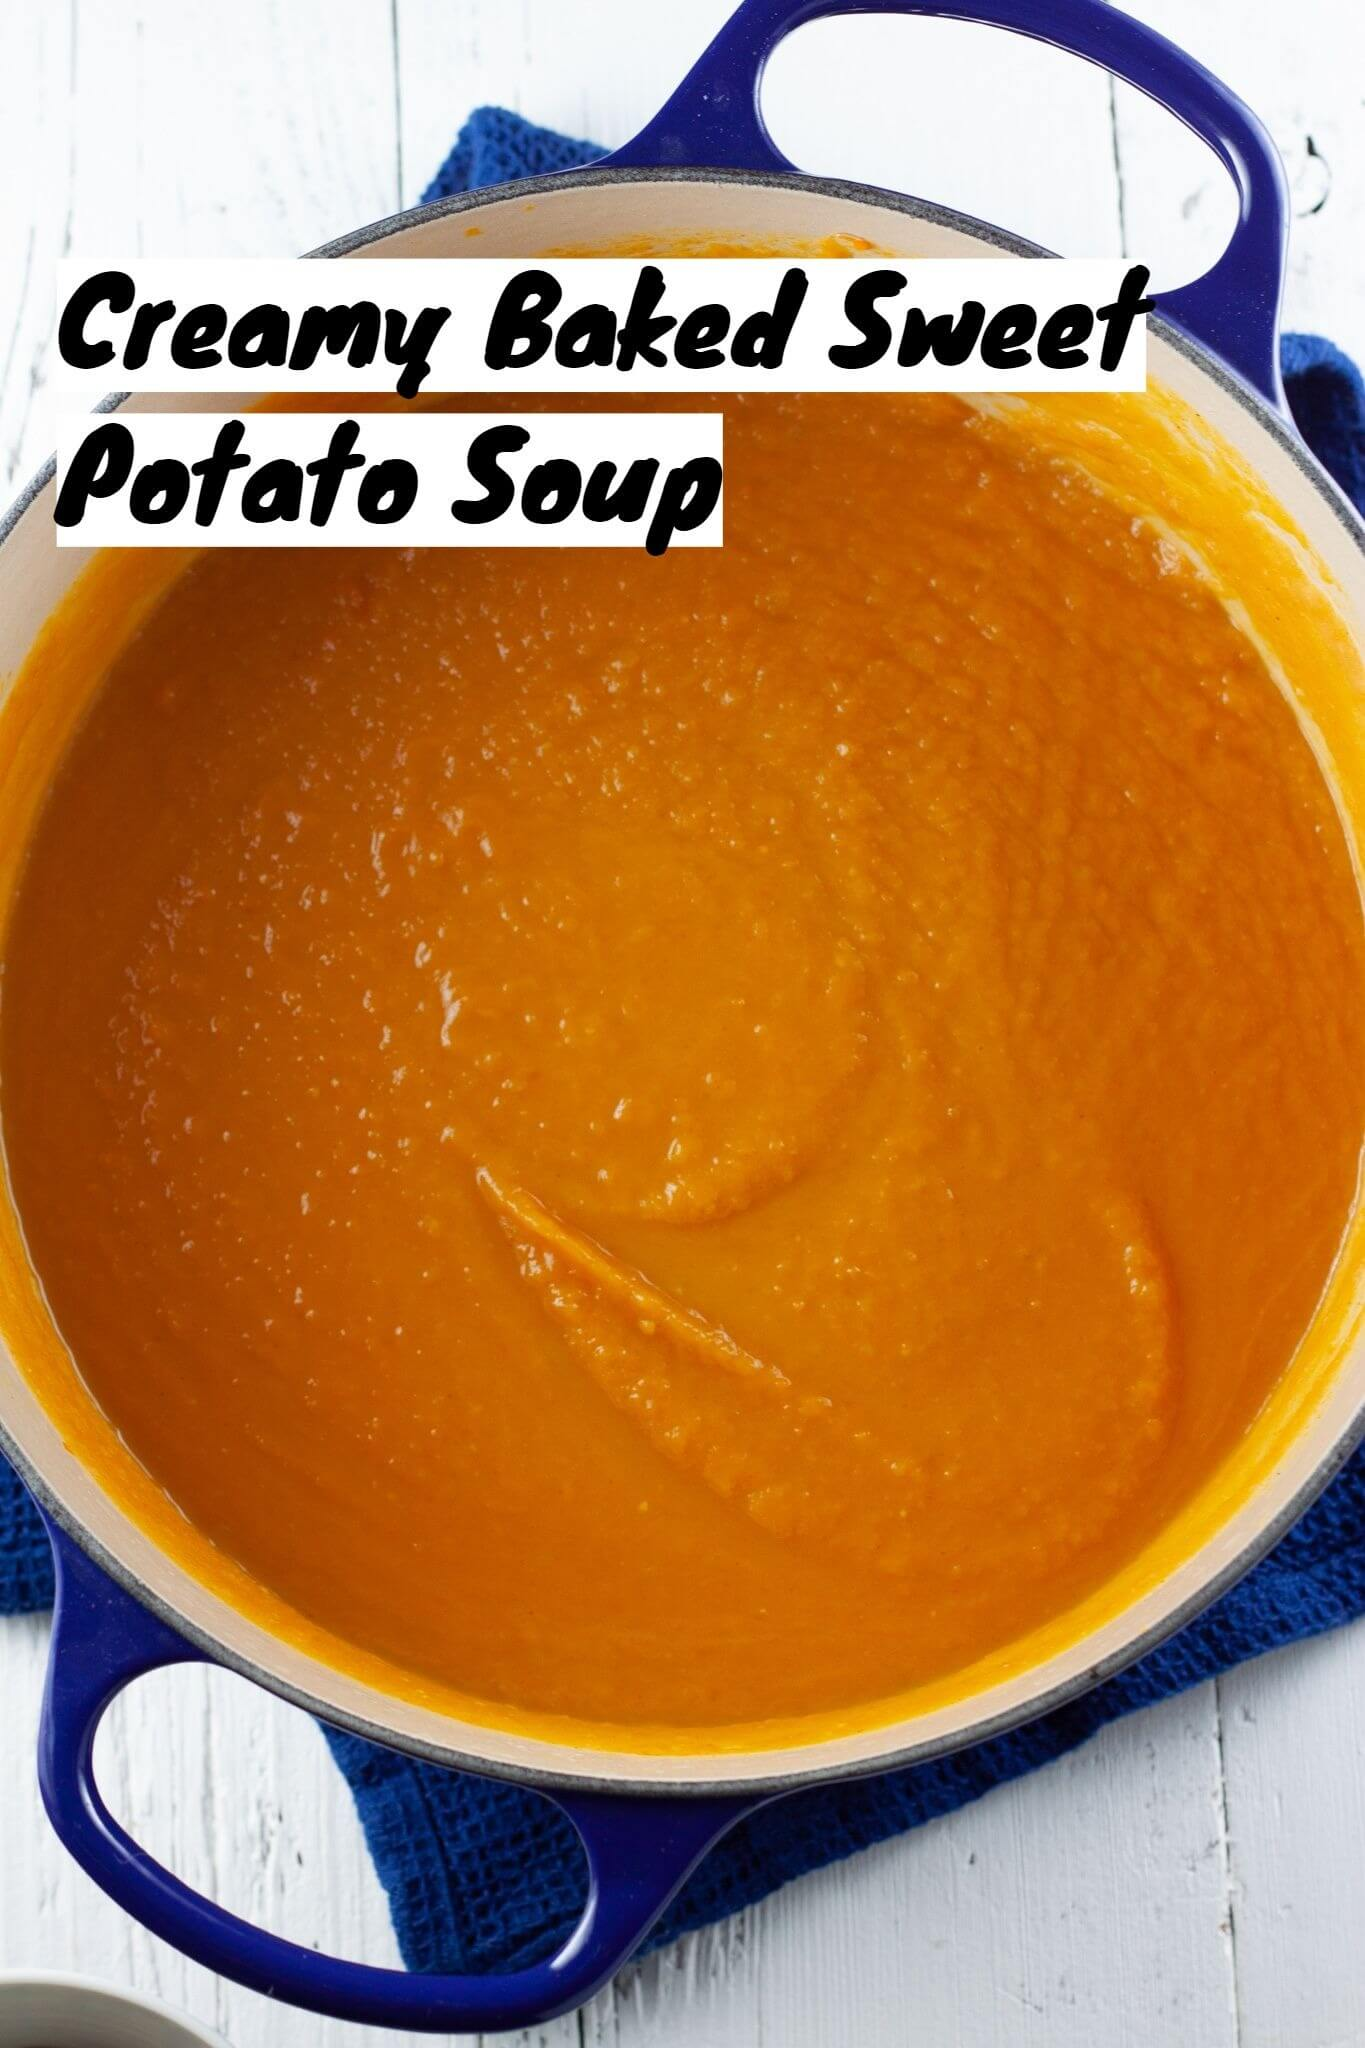 Creamy Baked Sweet Potato Soup